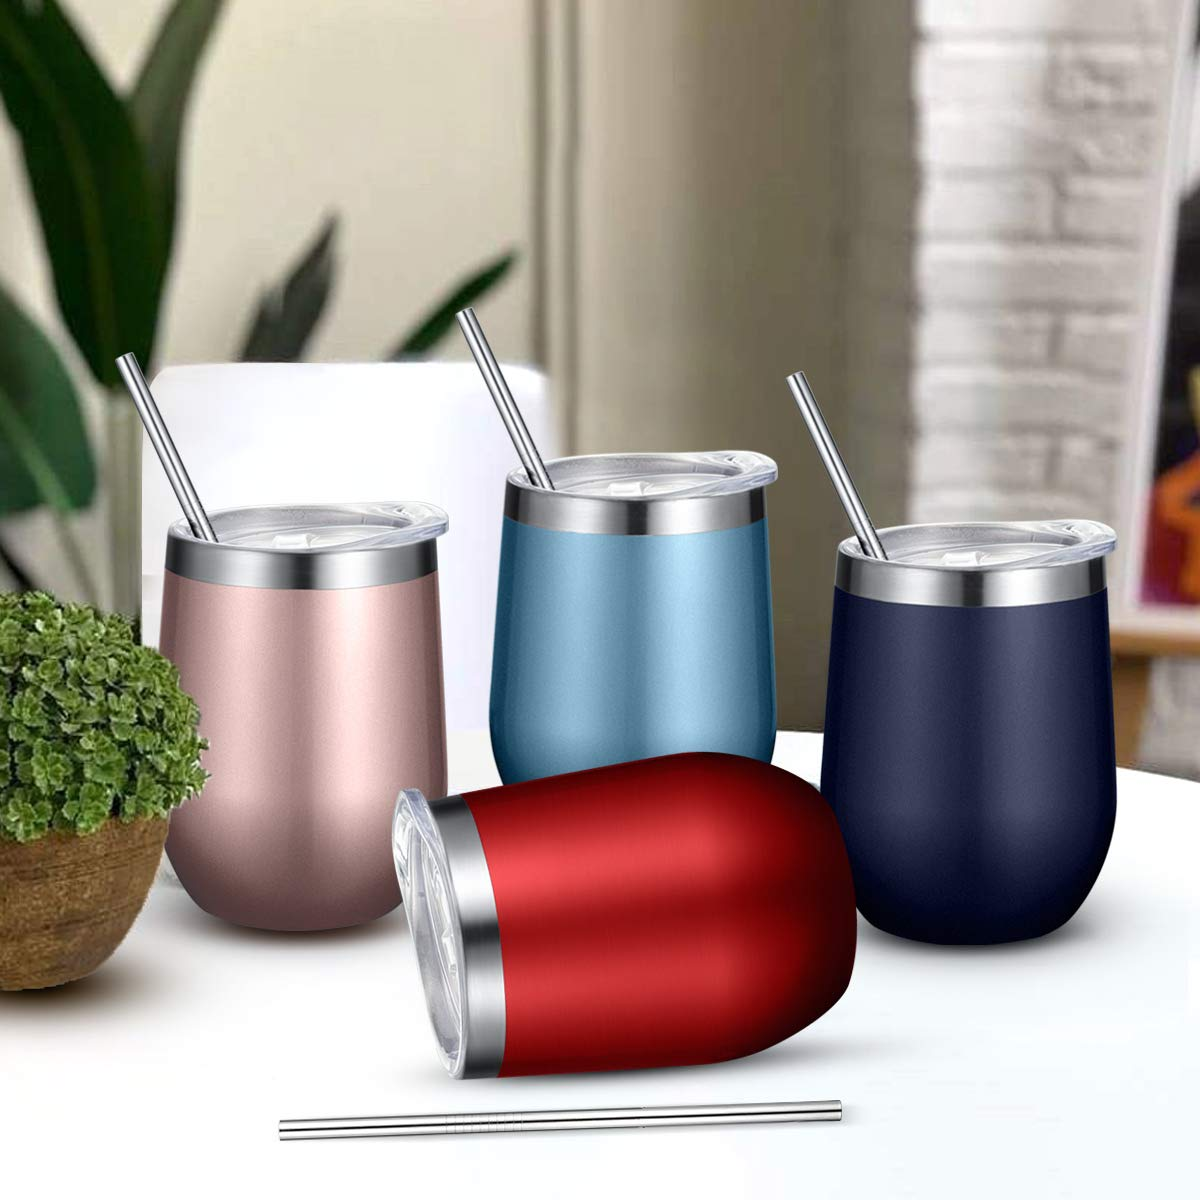 Fungun 8 Pack 12 oz Rose gold Stainless Steel Stemless Wine Glass Tumbler Double Wall Vacuum Insulated Wine Tumbler with Straws for Wine, Coffee, Drinks, Cocktails, Champagne by Fungun (Image #4)